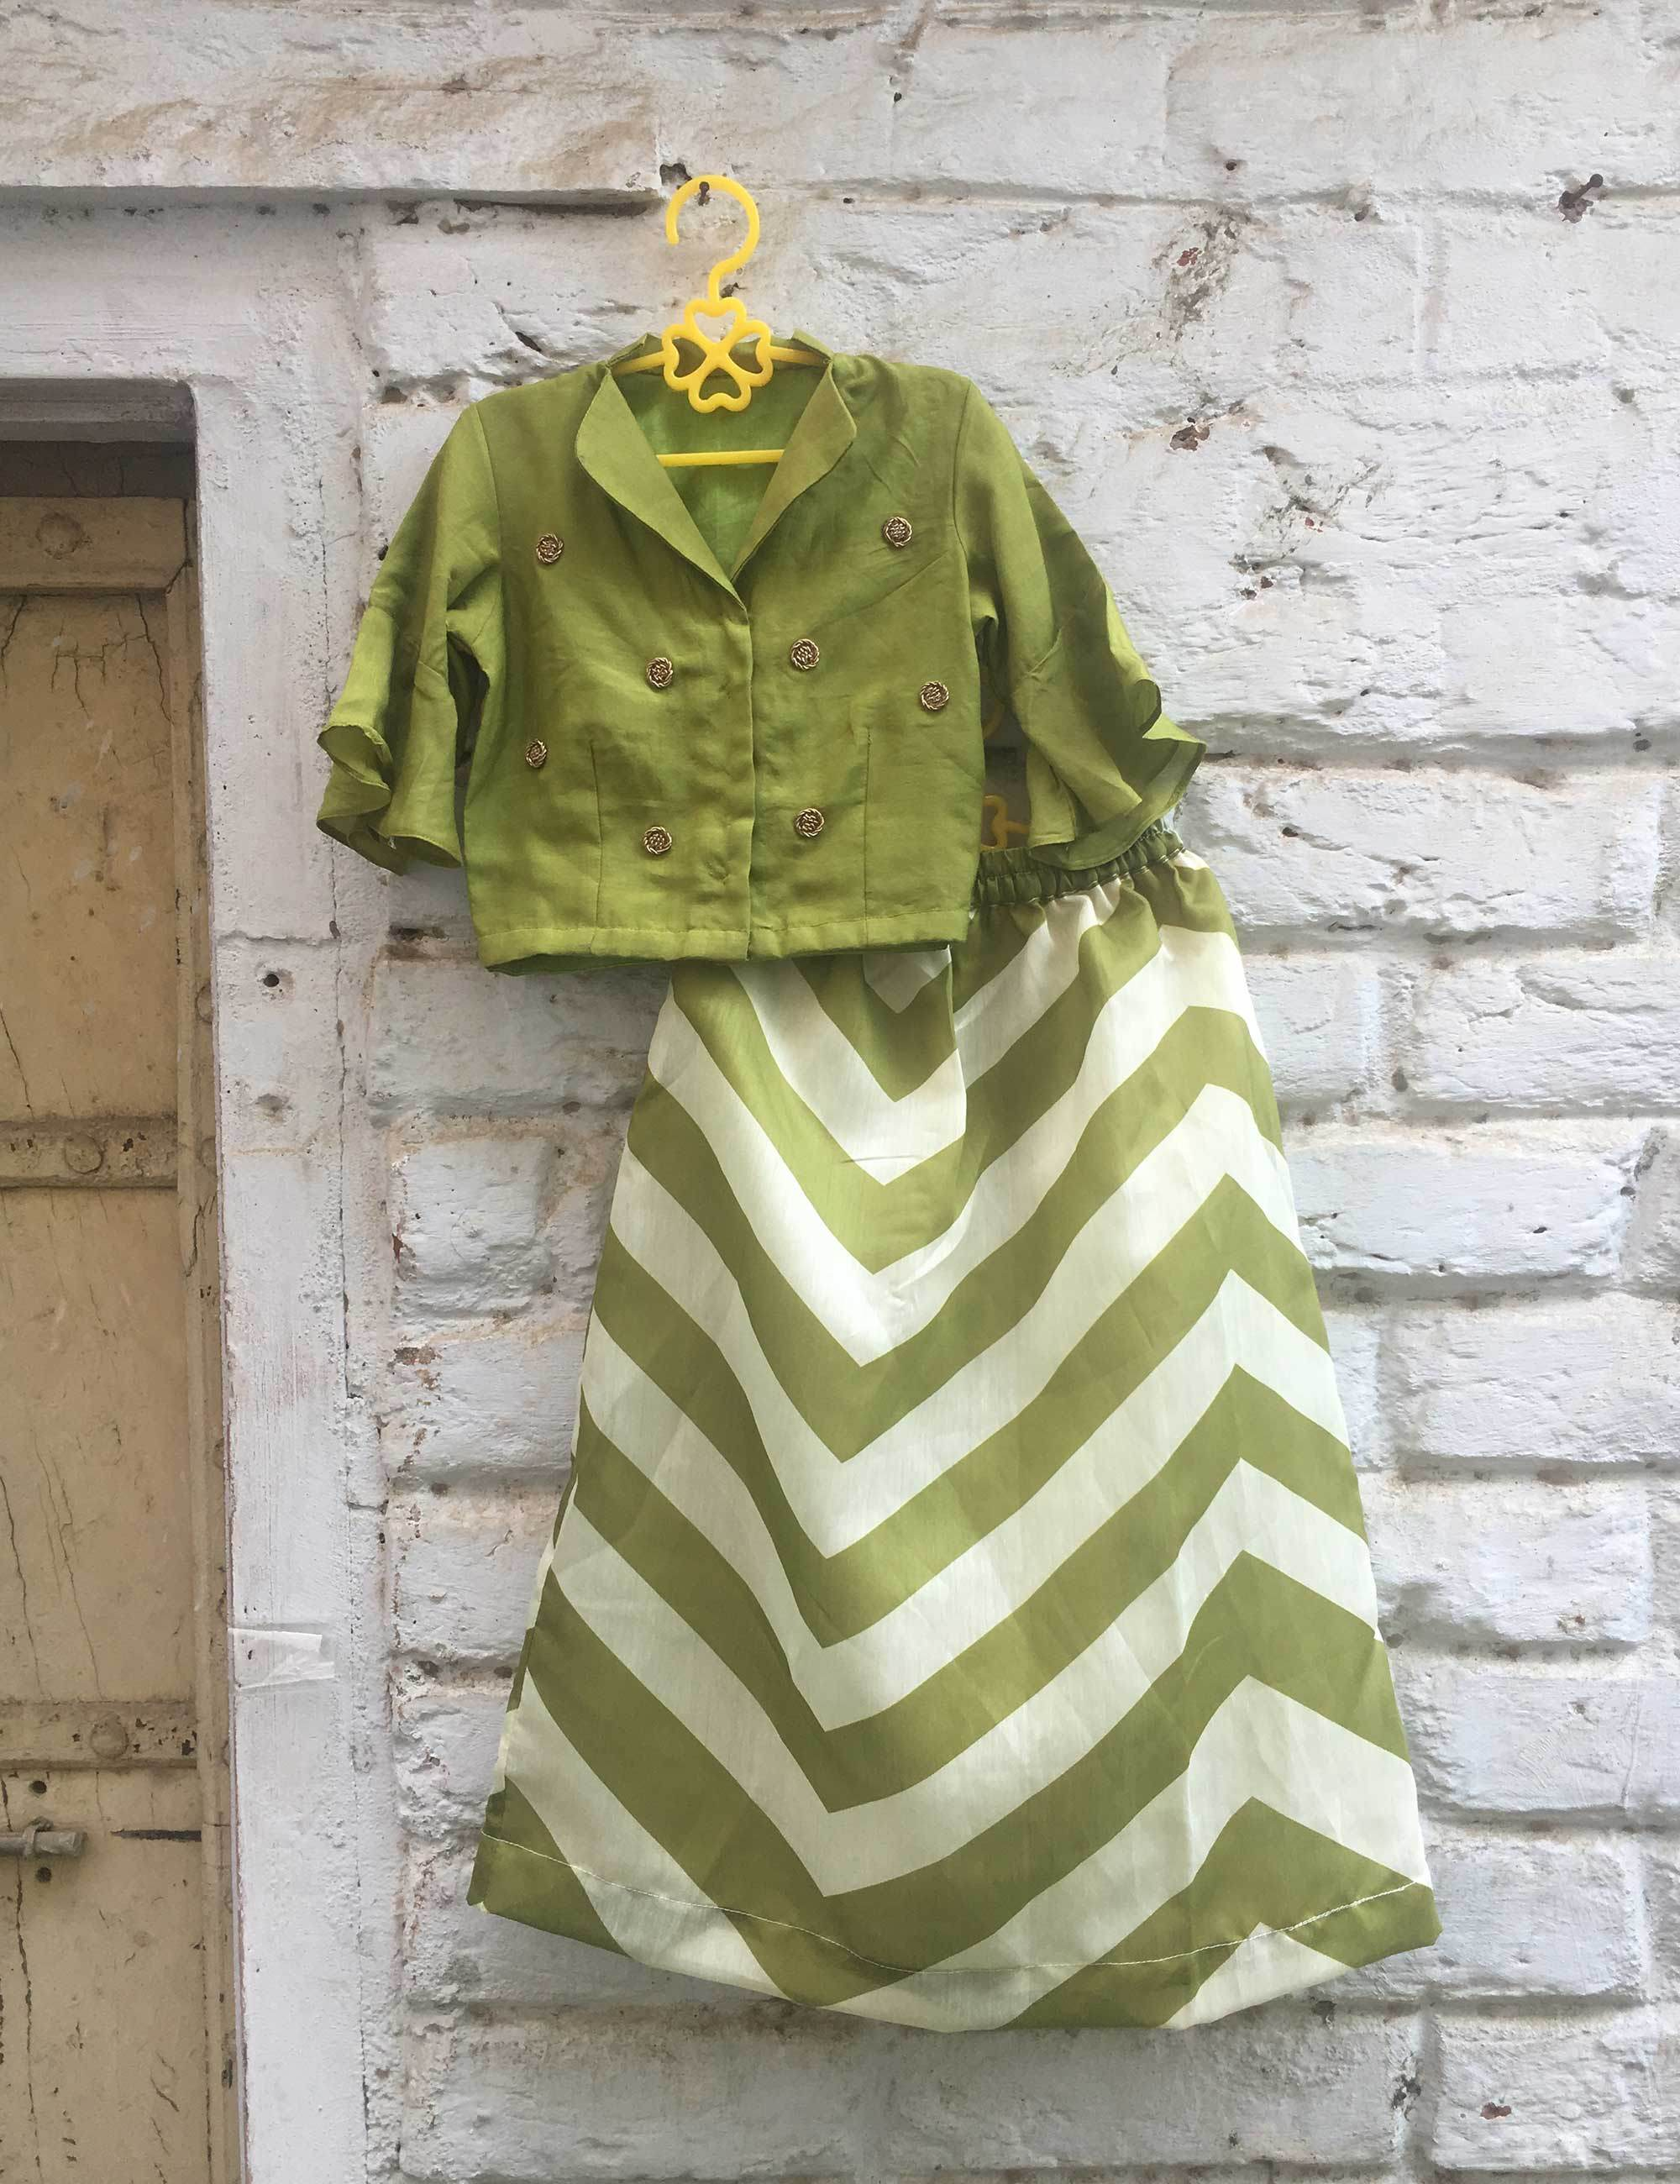 Crop-Top with Skirt in Green Colour for Girls